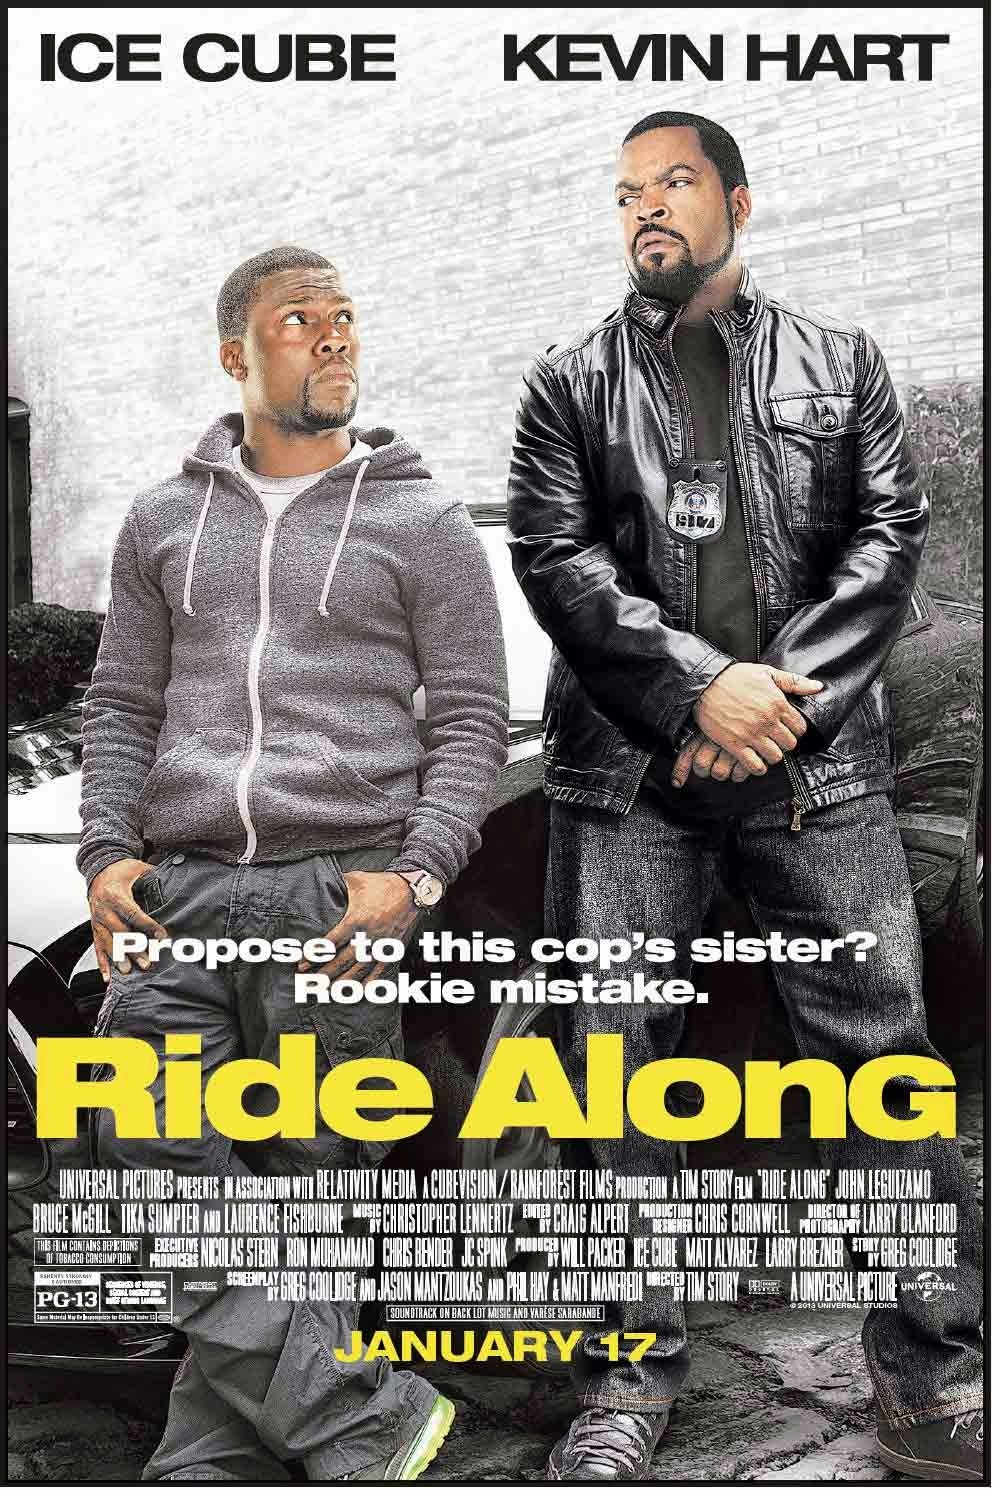 https://static.tvtropes.org/pmwiki/pub/images/ride_along_movie_poster_kevin_hart_ice_cube.jpg